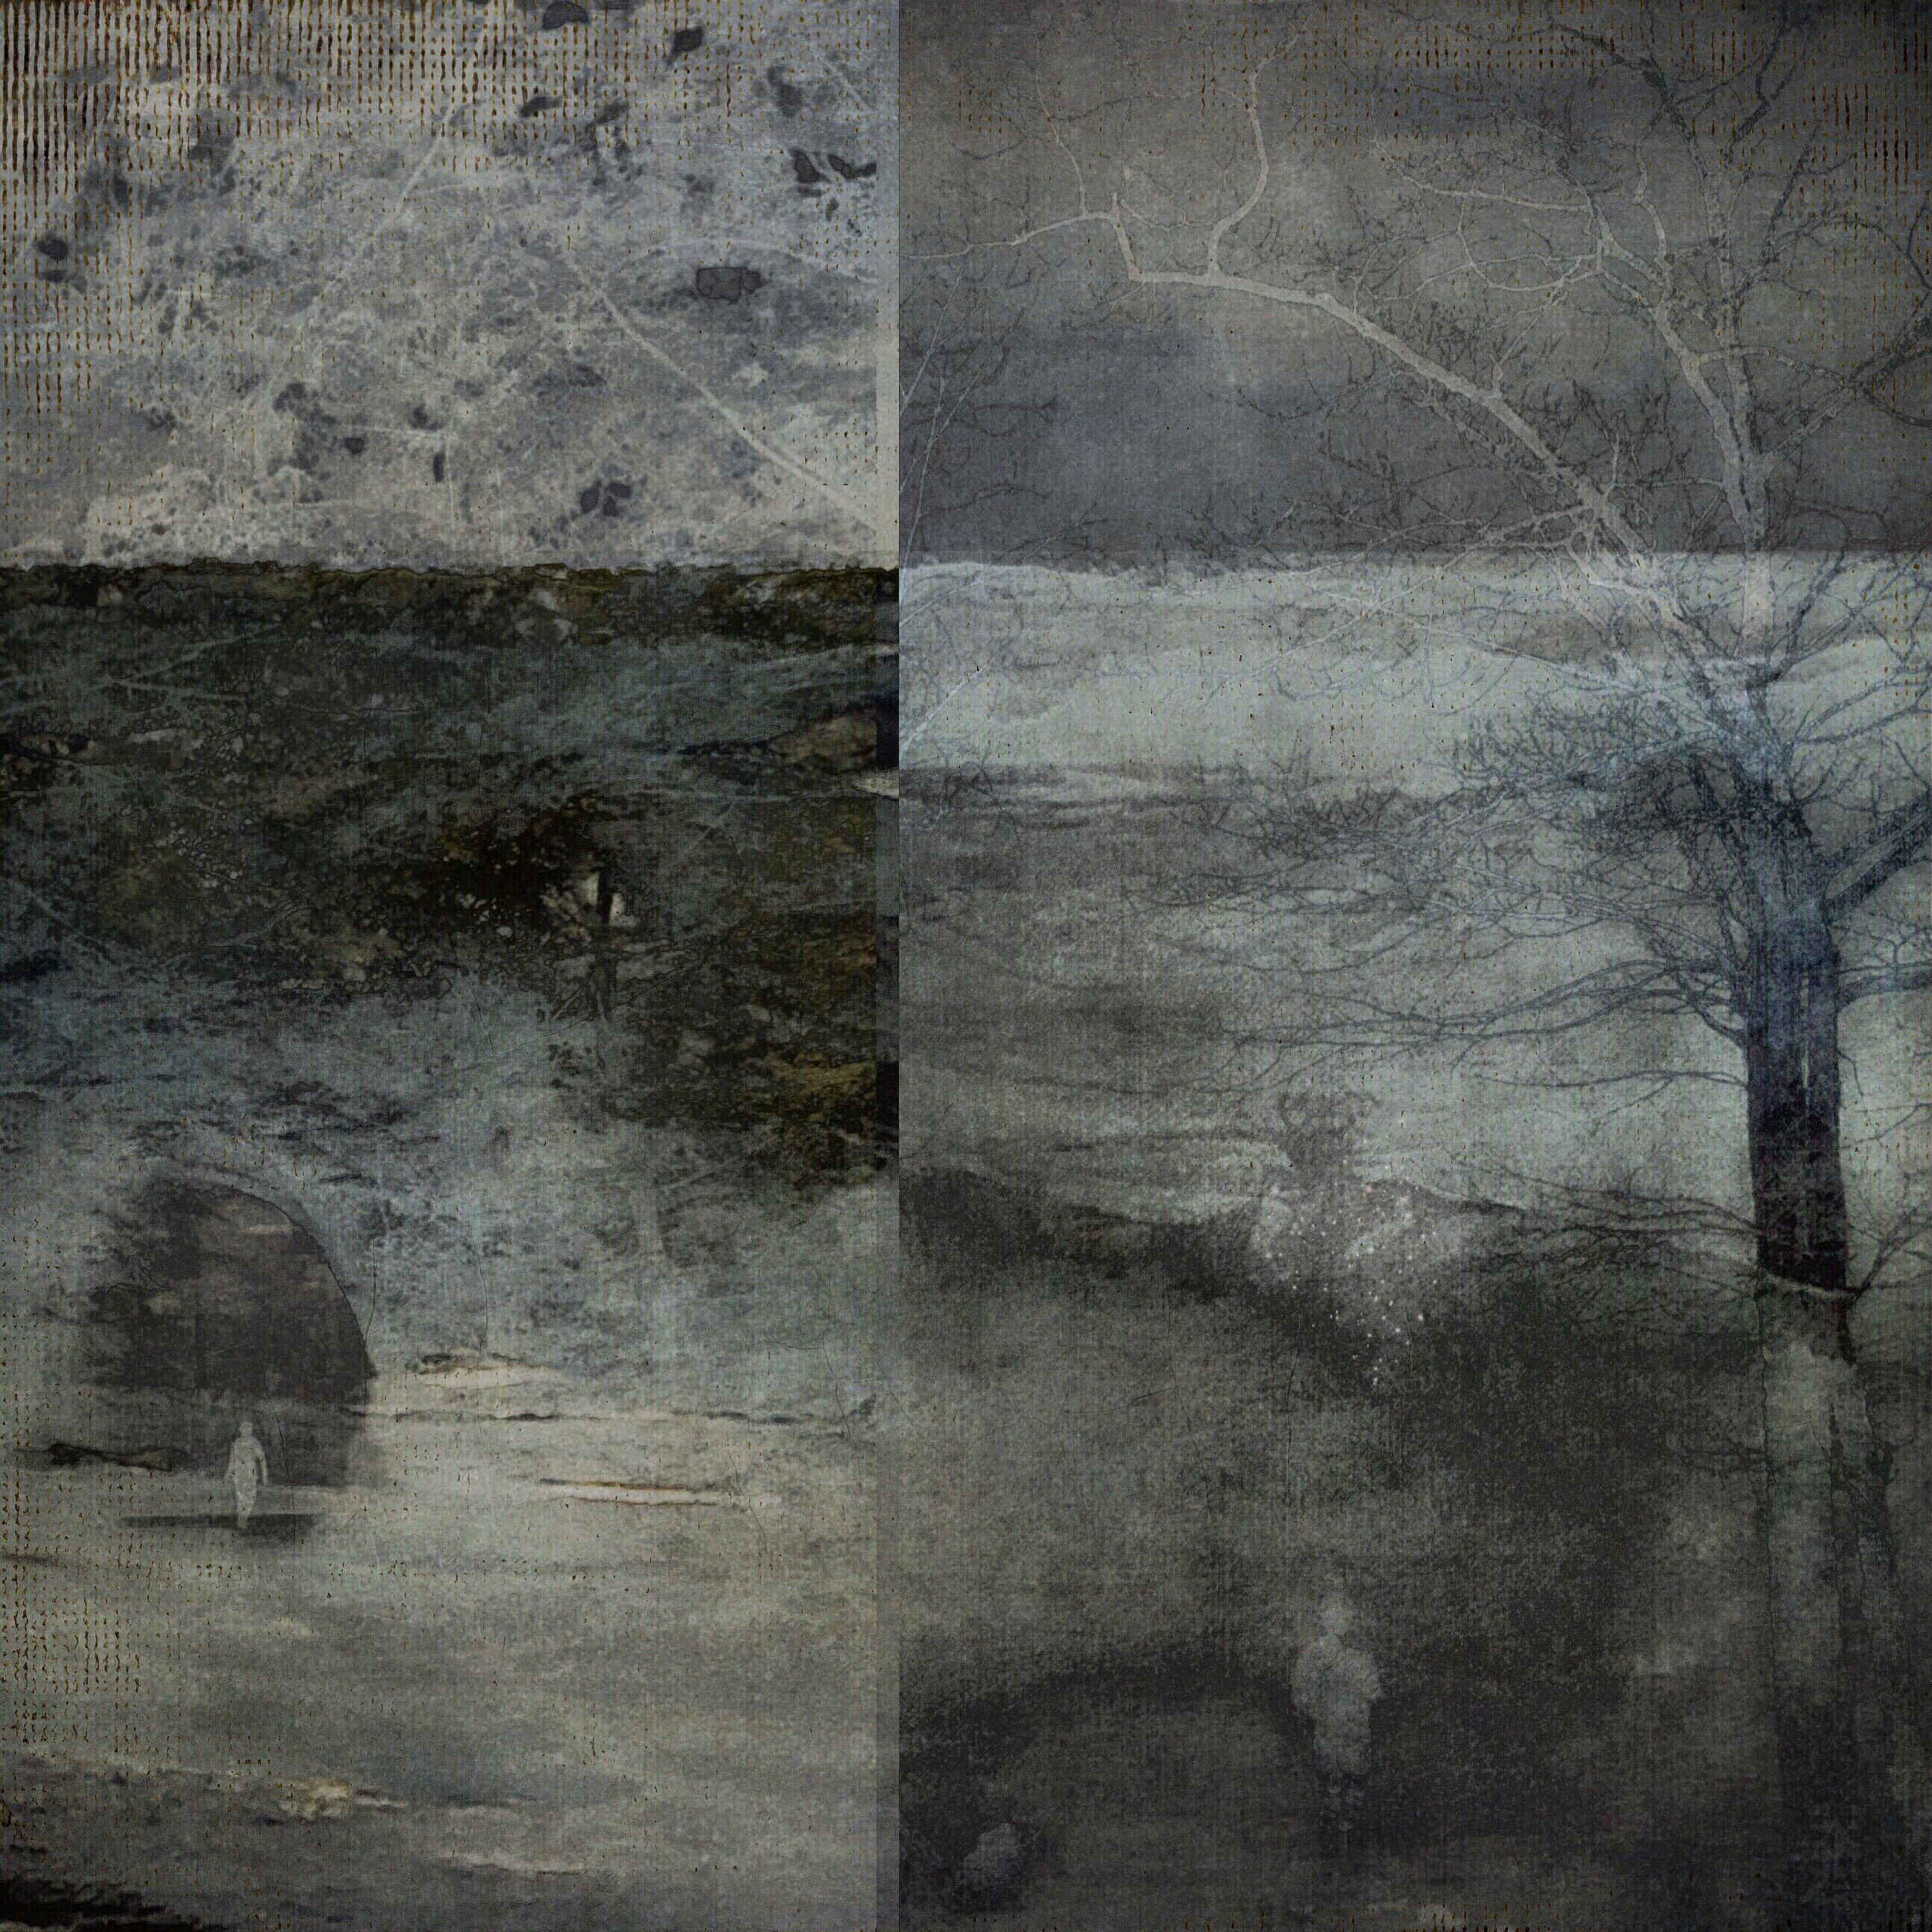 Barbara duBois ~ The world doesn't change in front of your eyes; it changes behind your back. —Terry Hayes